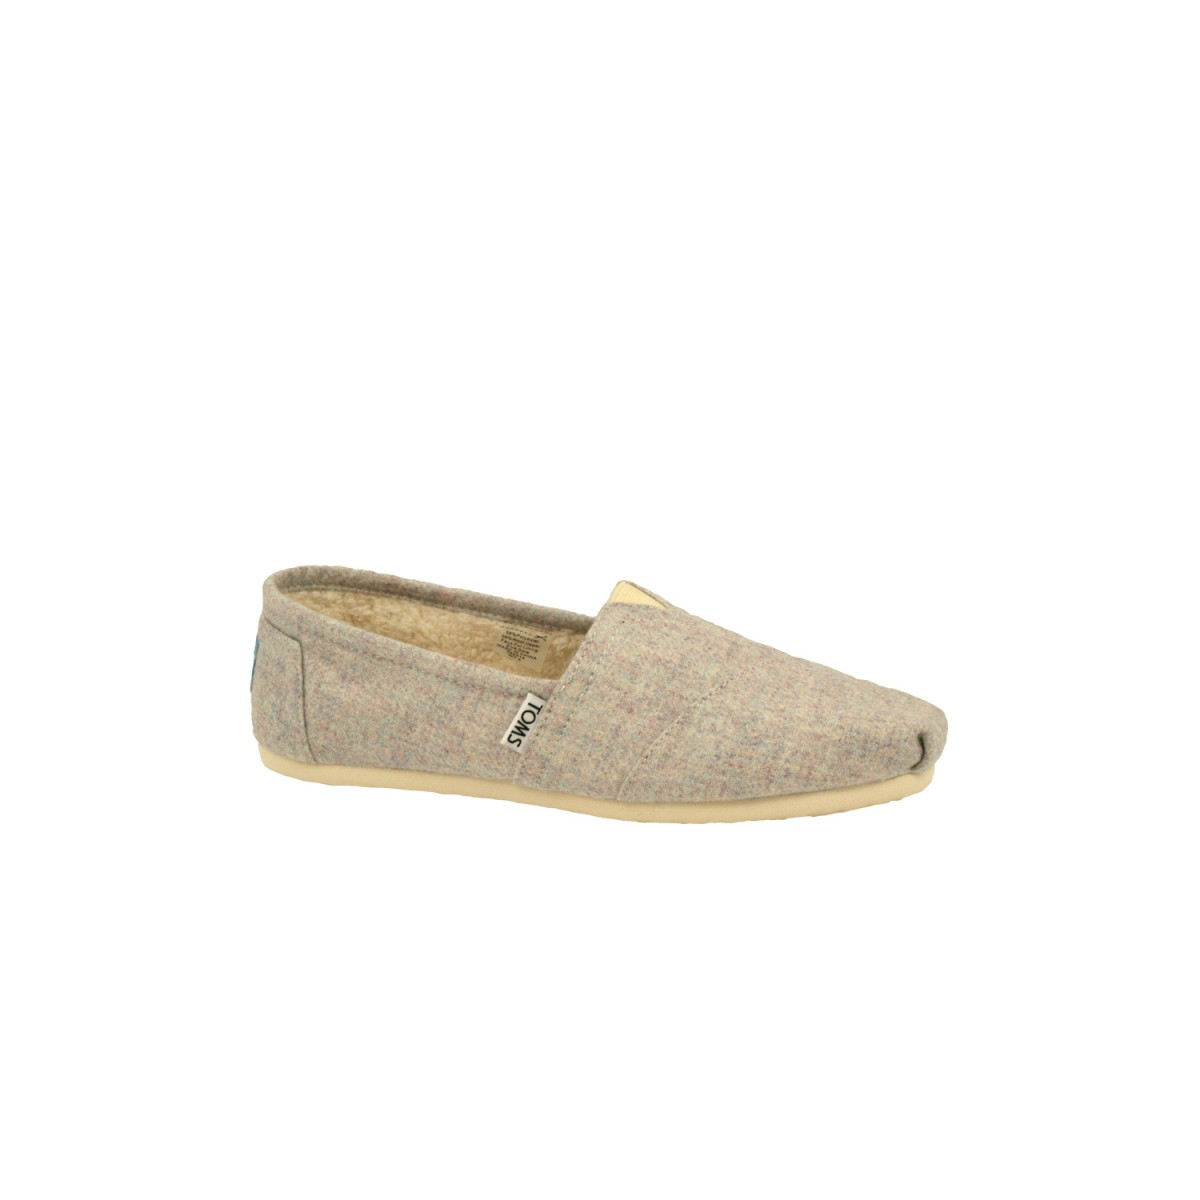 TOMS Light Woolen-35